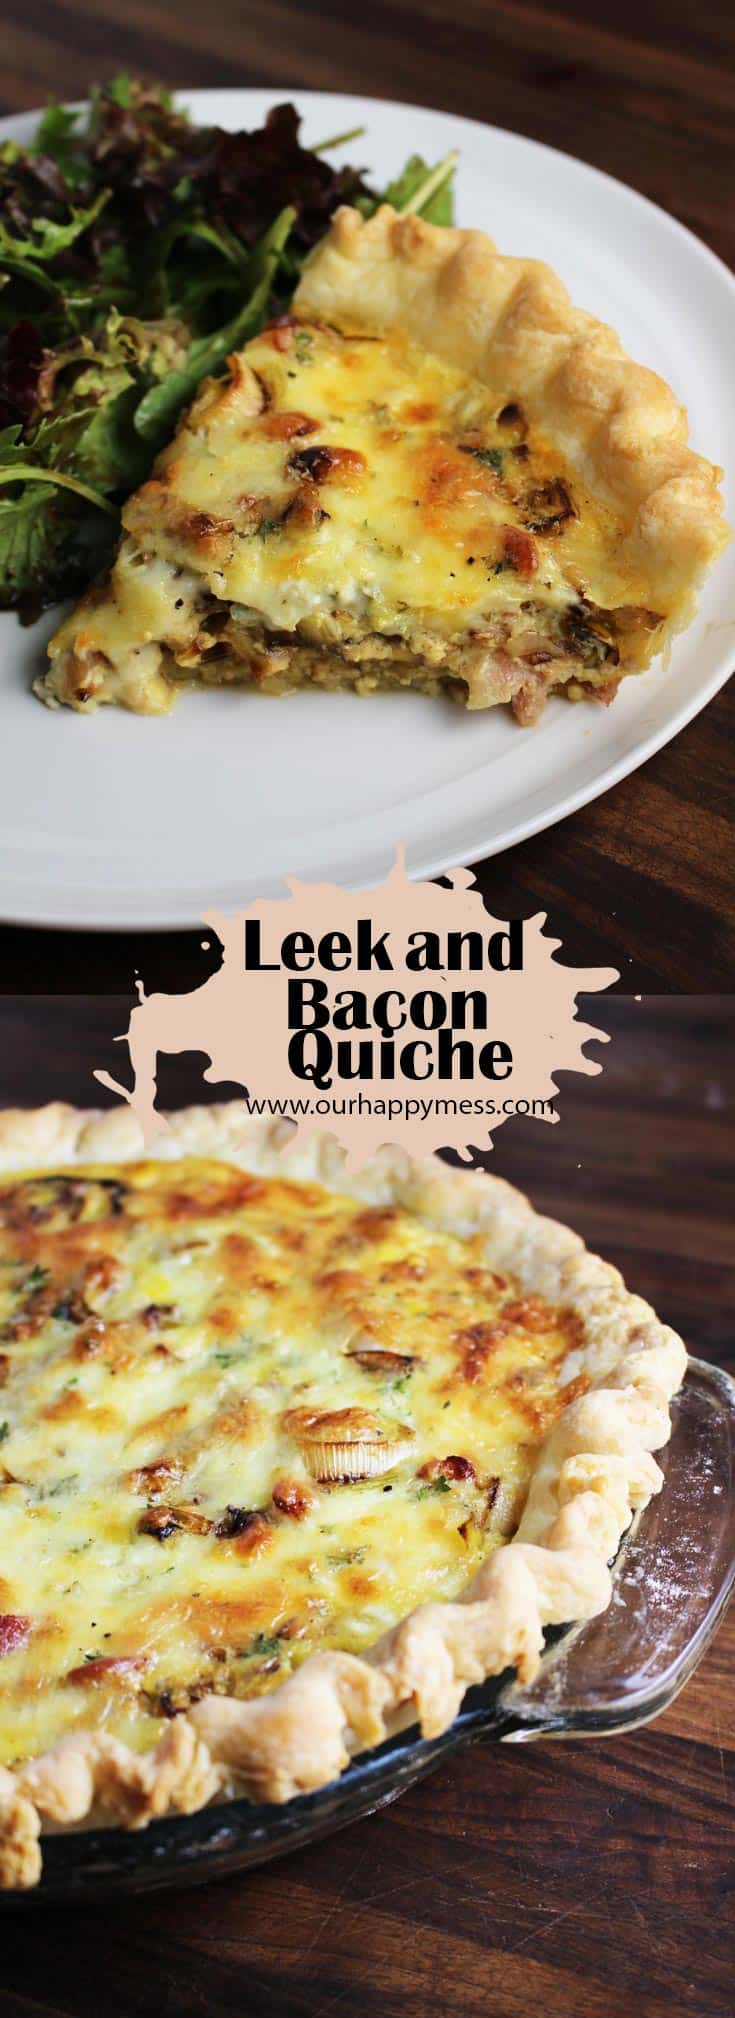 This easy spring leek and bacon quiche with a tender and flaky homemade crust is a family favorite, and is perfect for any meal from breakfast to dinner! #bacon #quiche #brunch